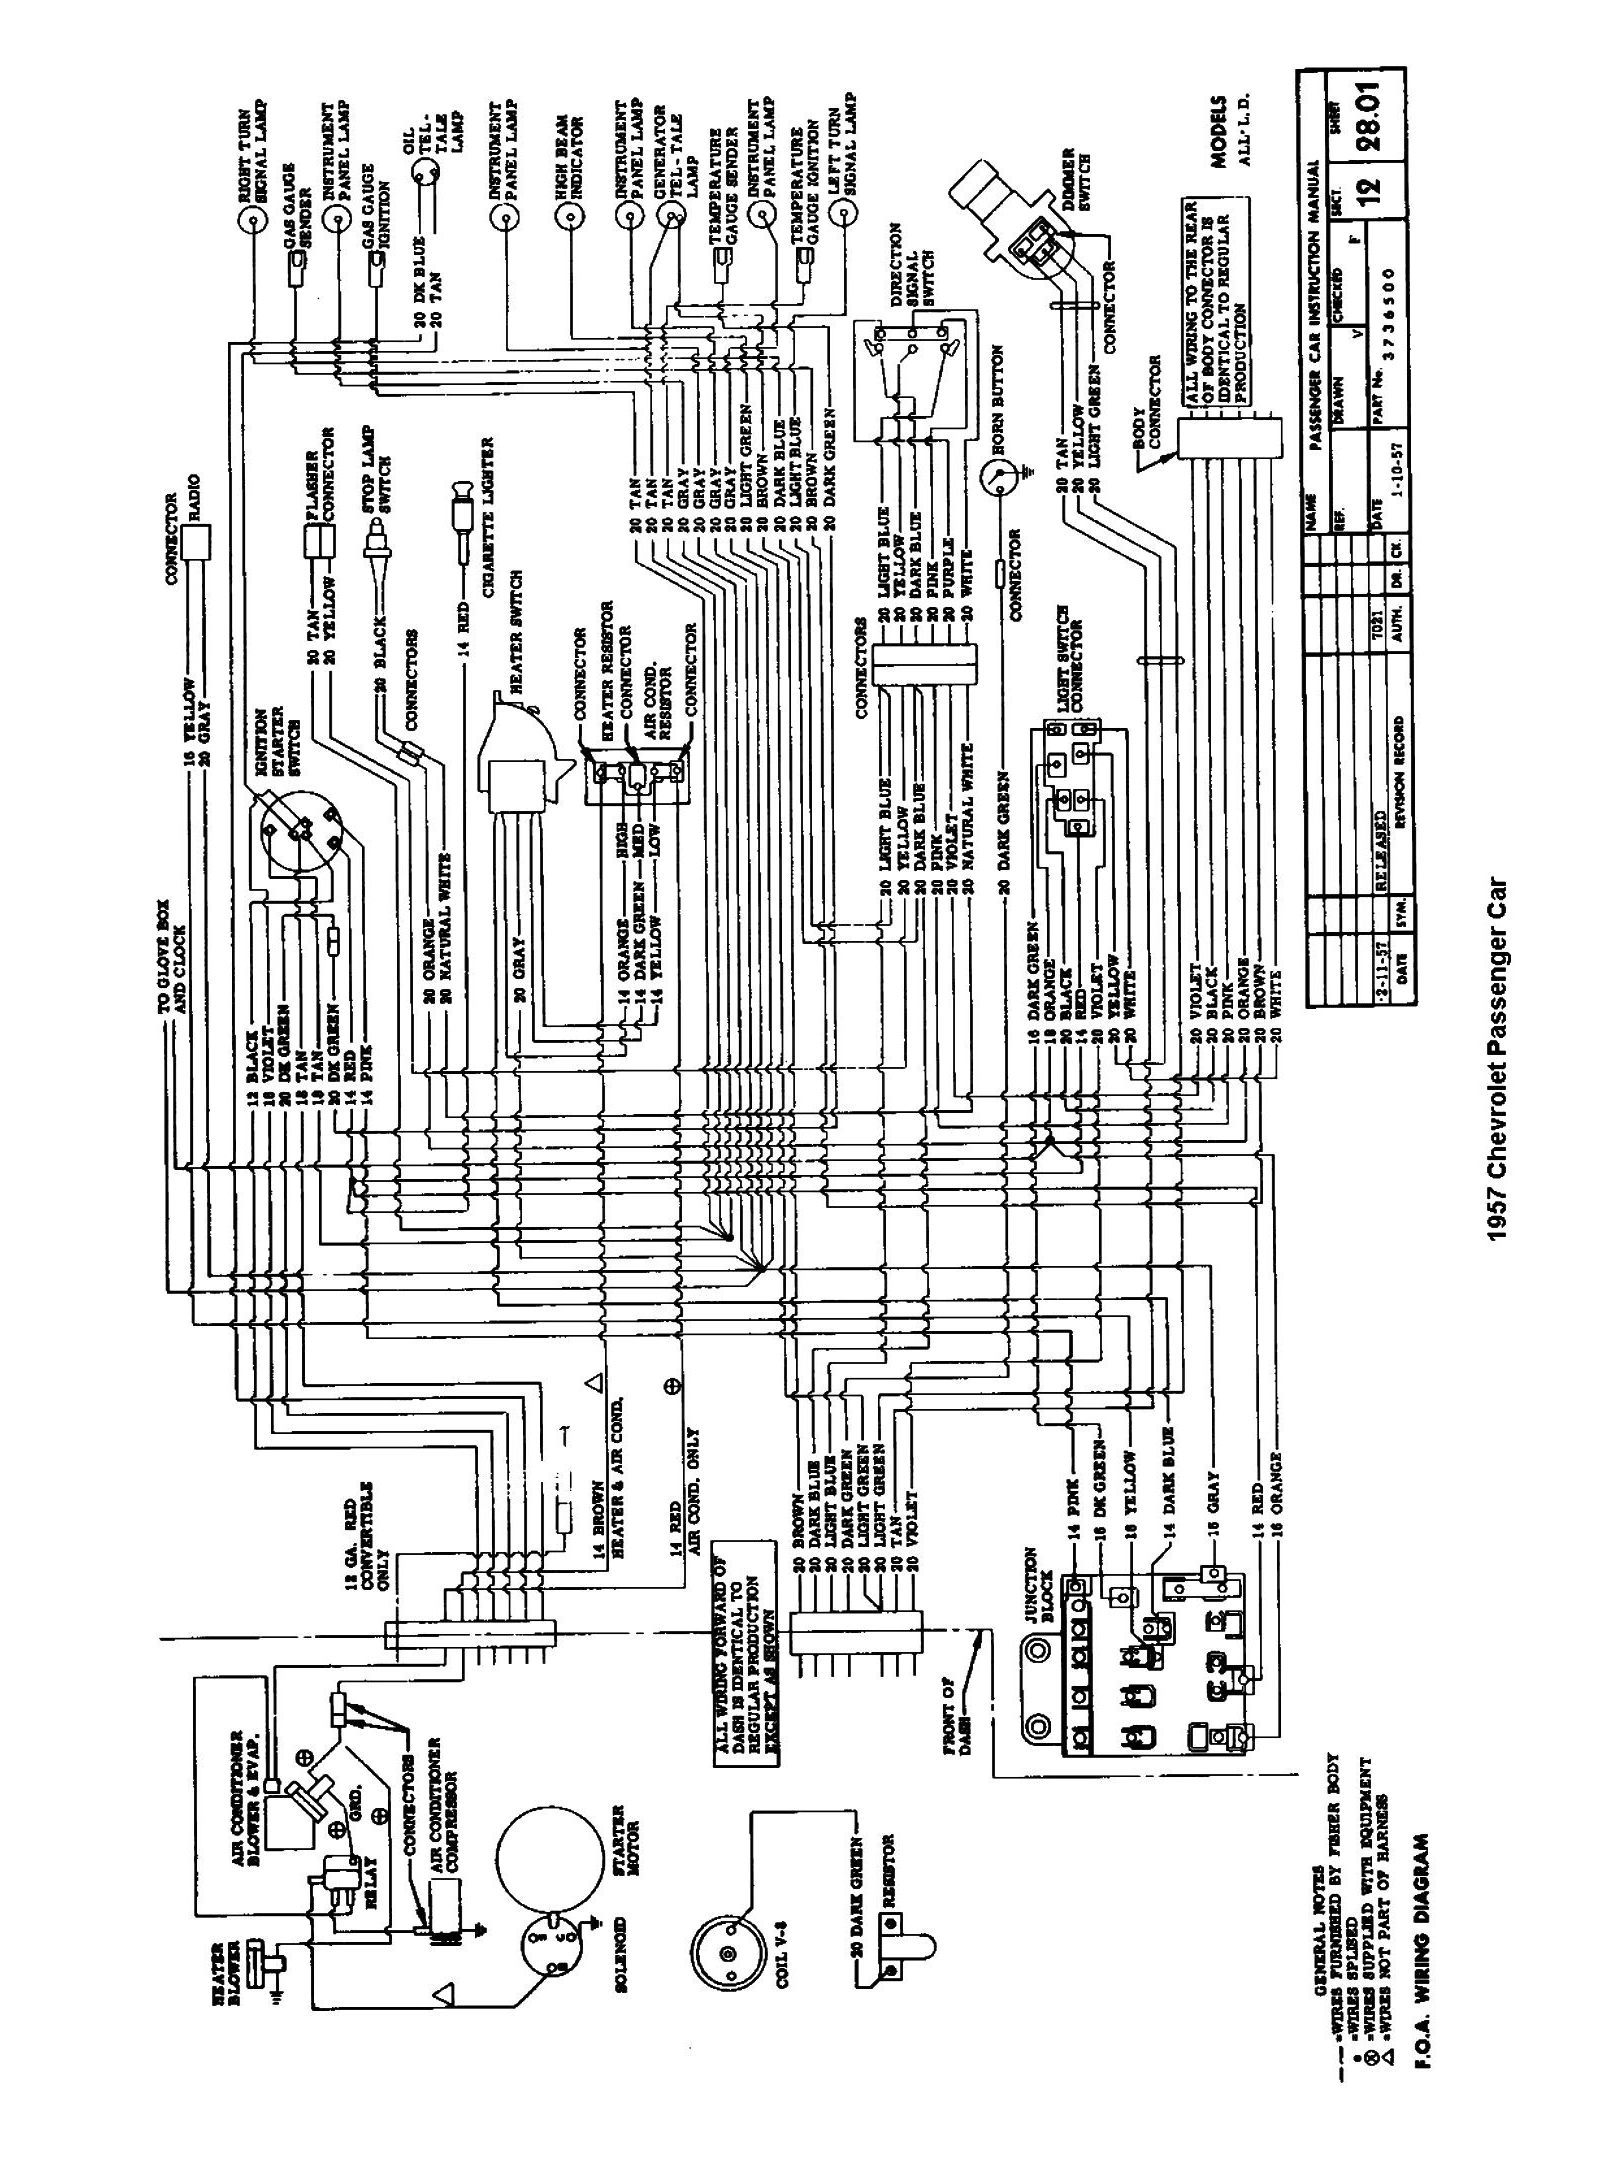 Chevy Wiring Diagrams Car 1957 Passenger 2